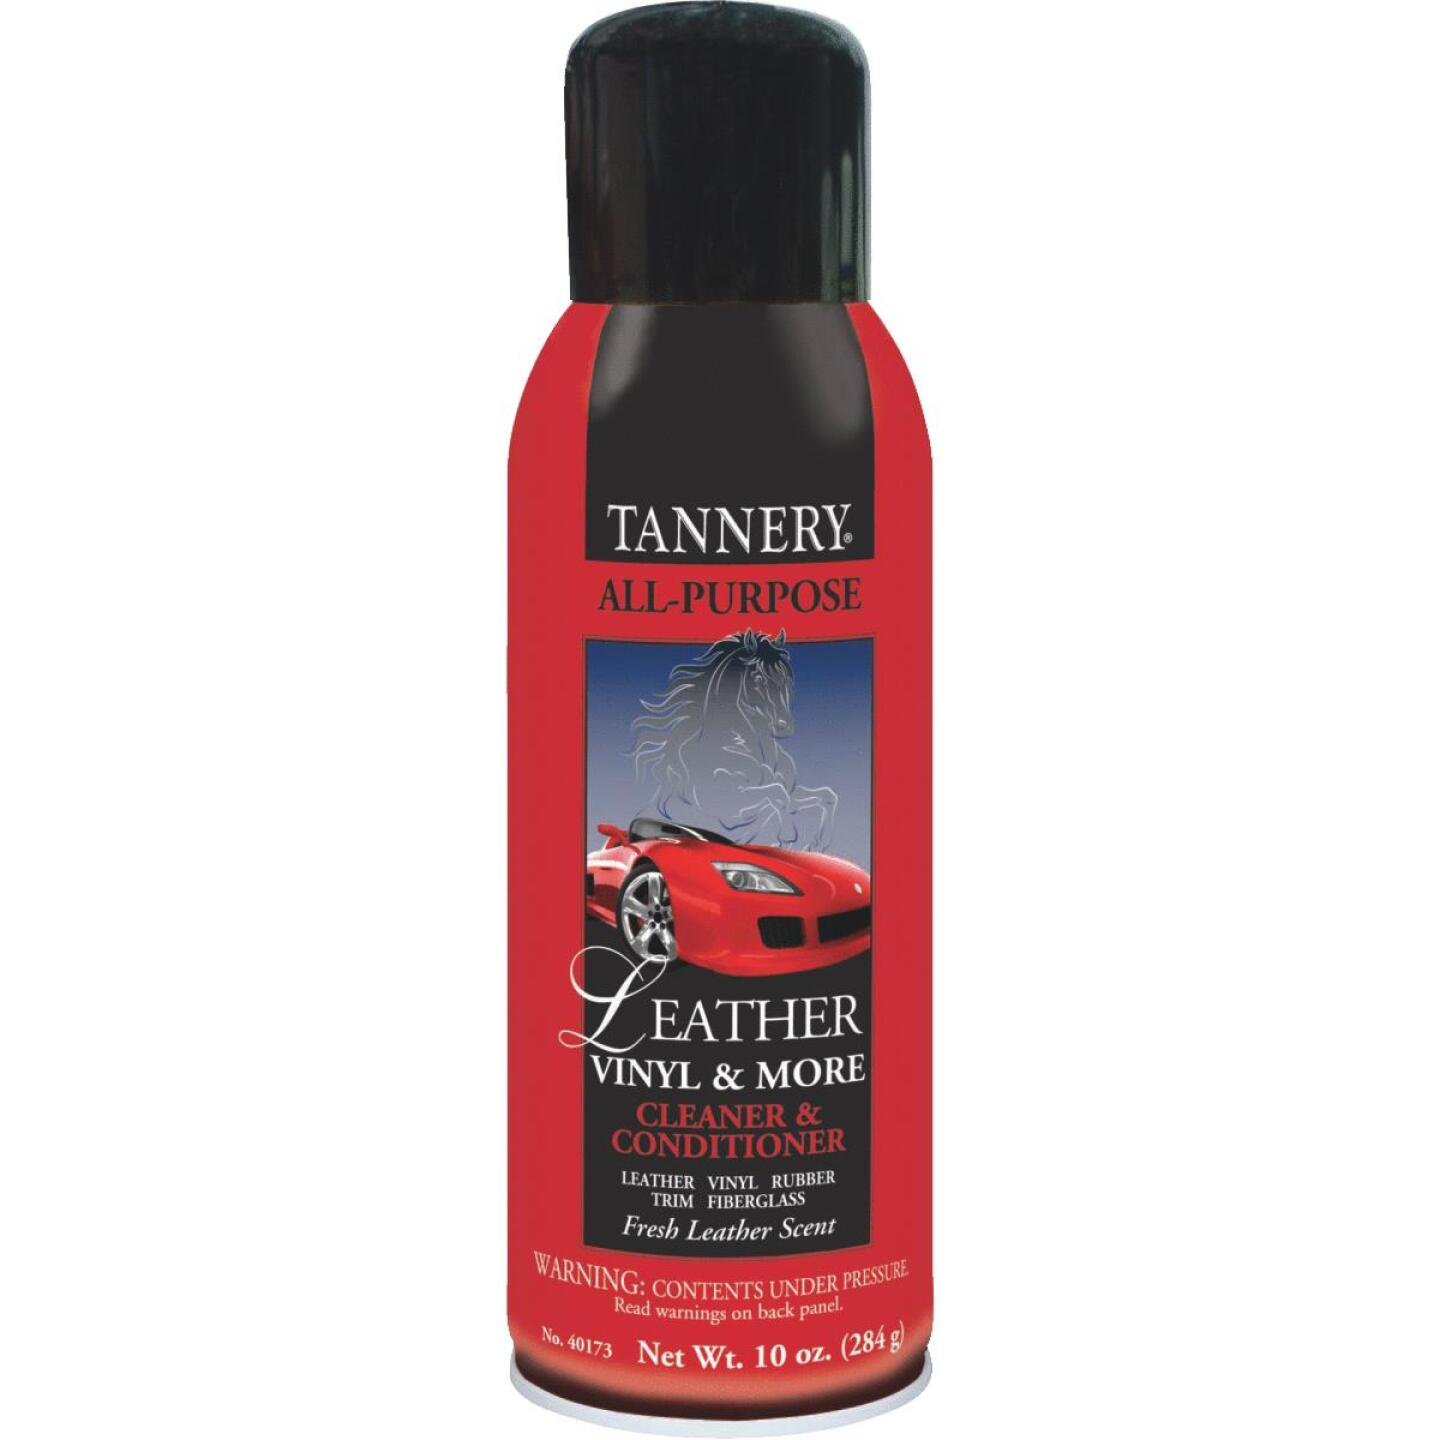 Tannery 10 Oz. Aerosol Spray All-Purpose Leather Care Cleaner & Conditioner Image 1